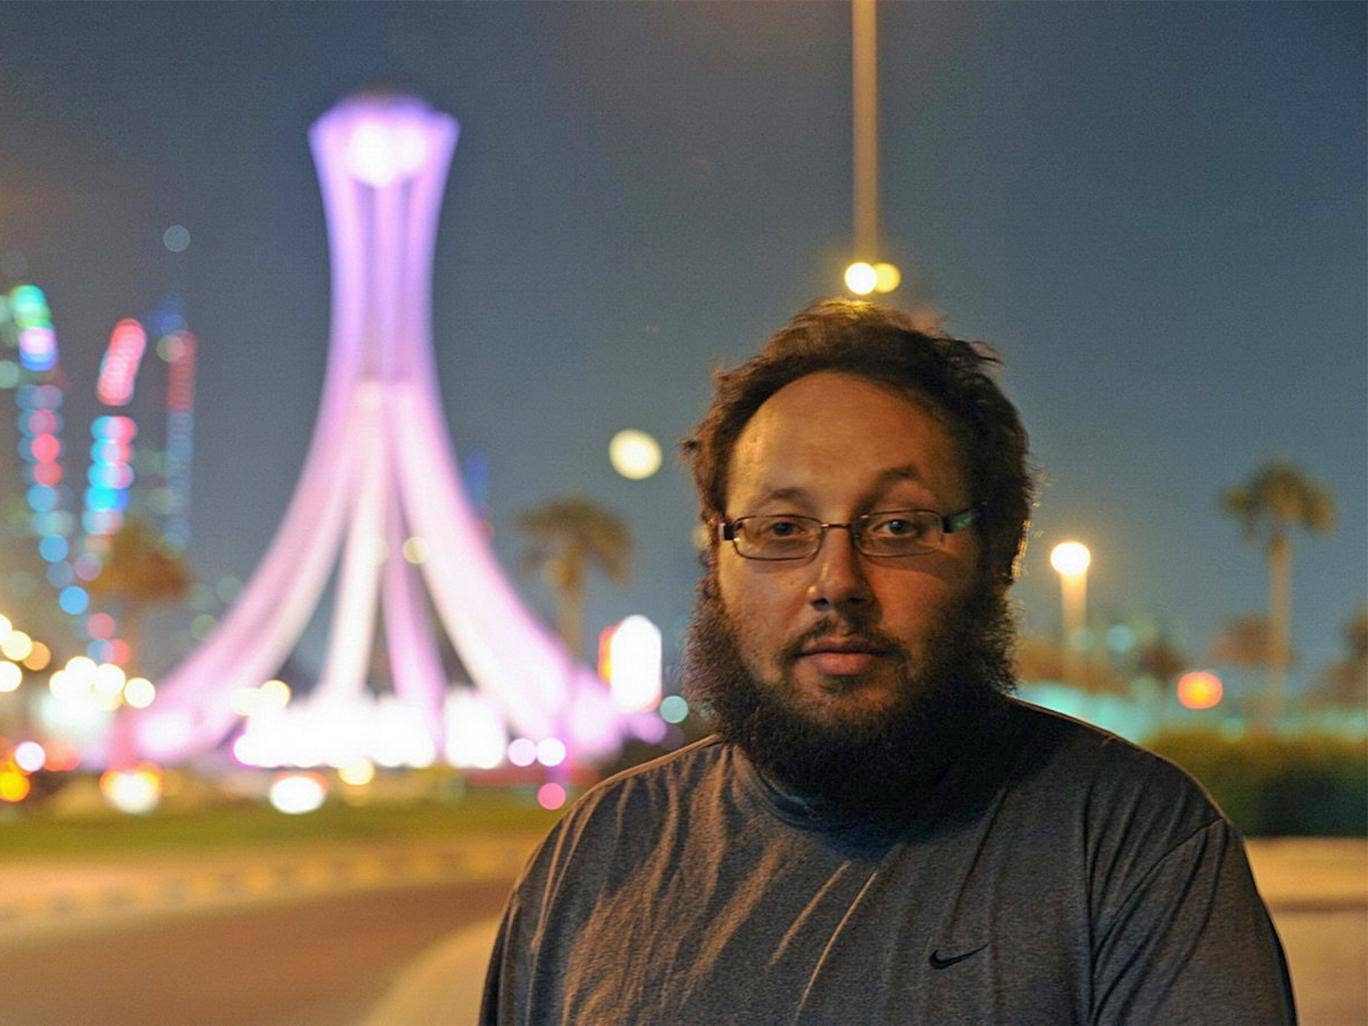 Steven Sotloff pictured in 2010 near Lulu Roundabout in Manama, which later became the iconic center for the 2011 pro-reform protests in Bahrain